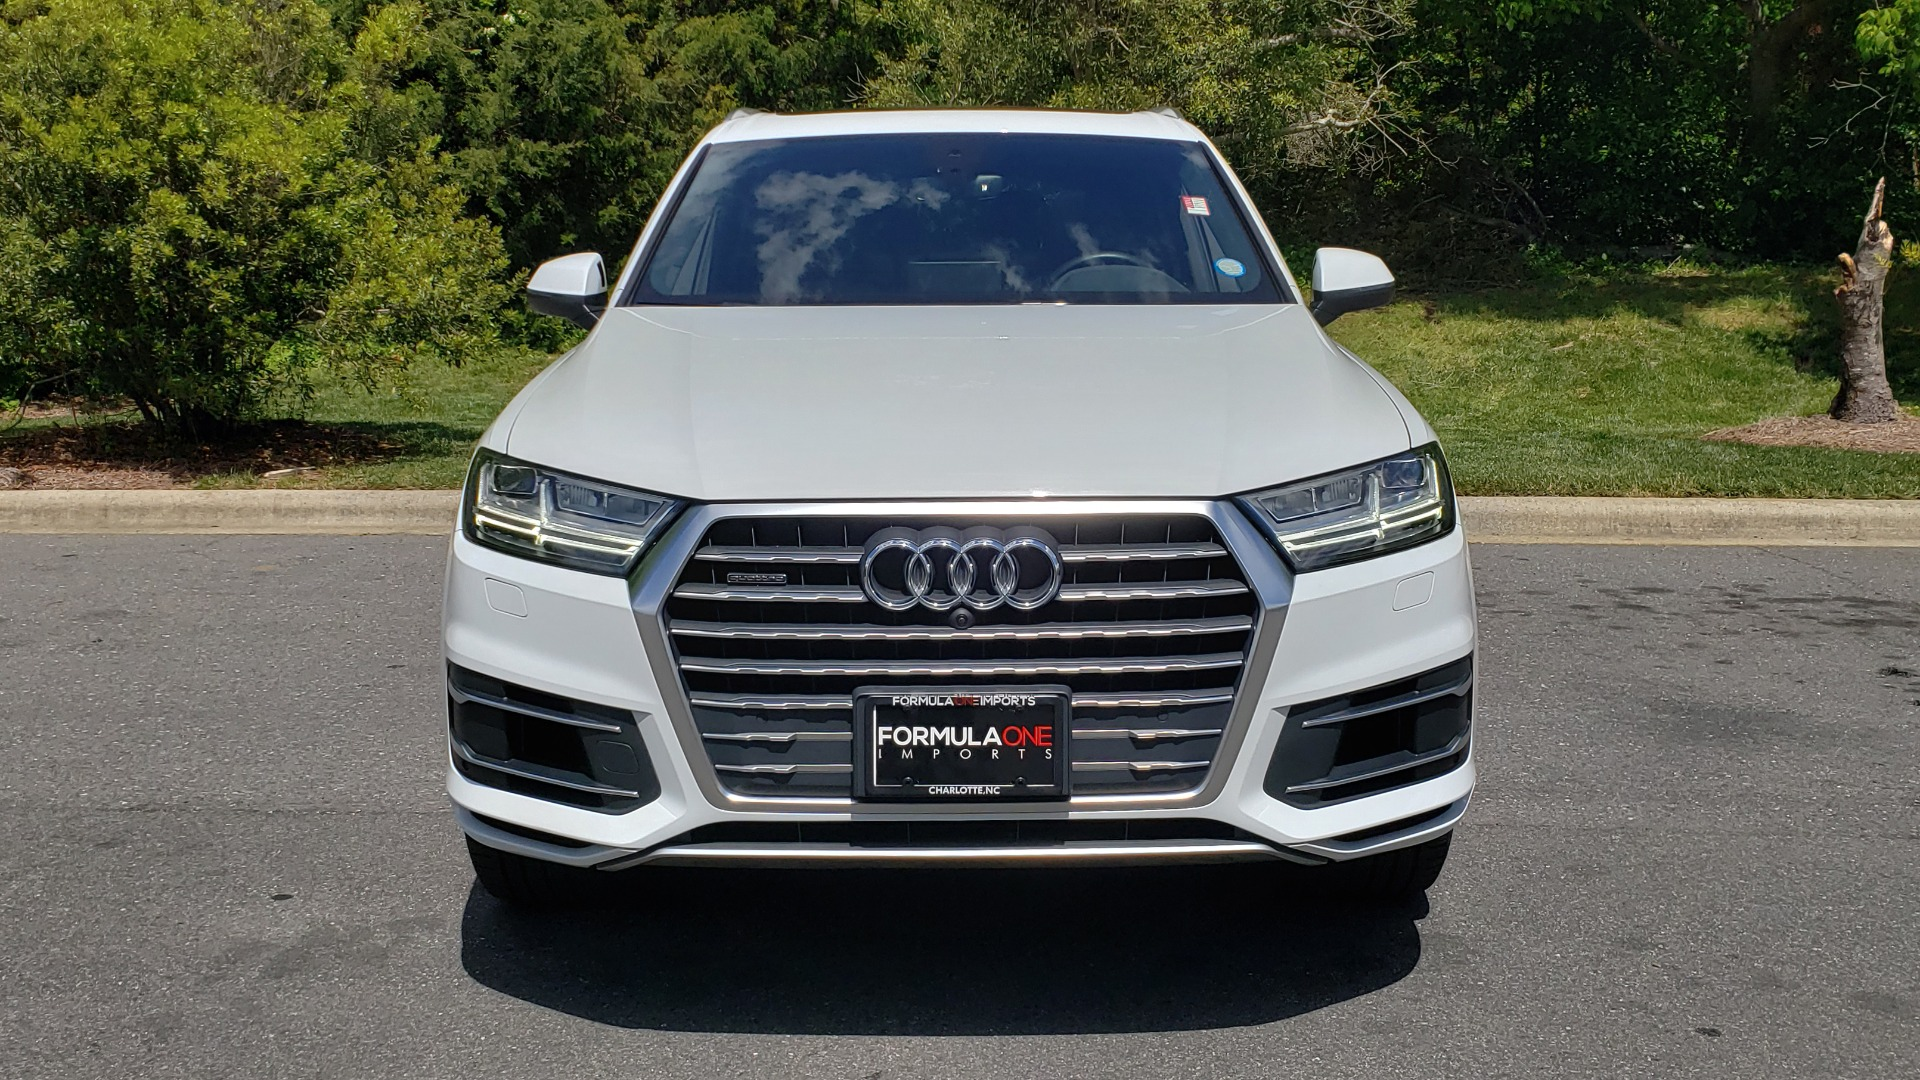 Used 2017 Audi Q7 PREMIUM PLUS / VISION PKG / NAV / PANO-ROOF / 3-ROW / REARVIEW for sale Sold at Formula Imports in Charlotte NC 28227 23